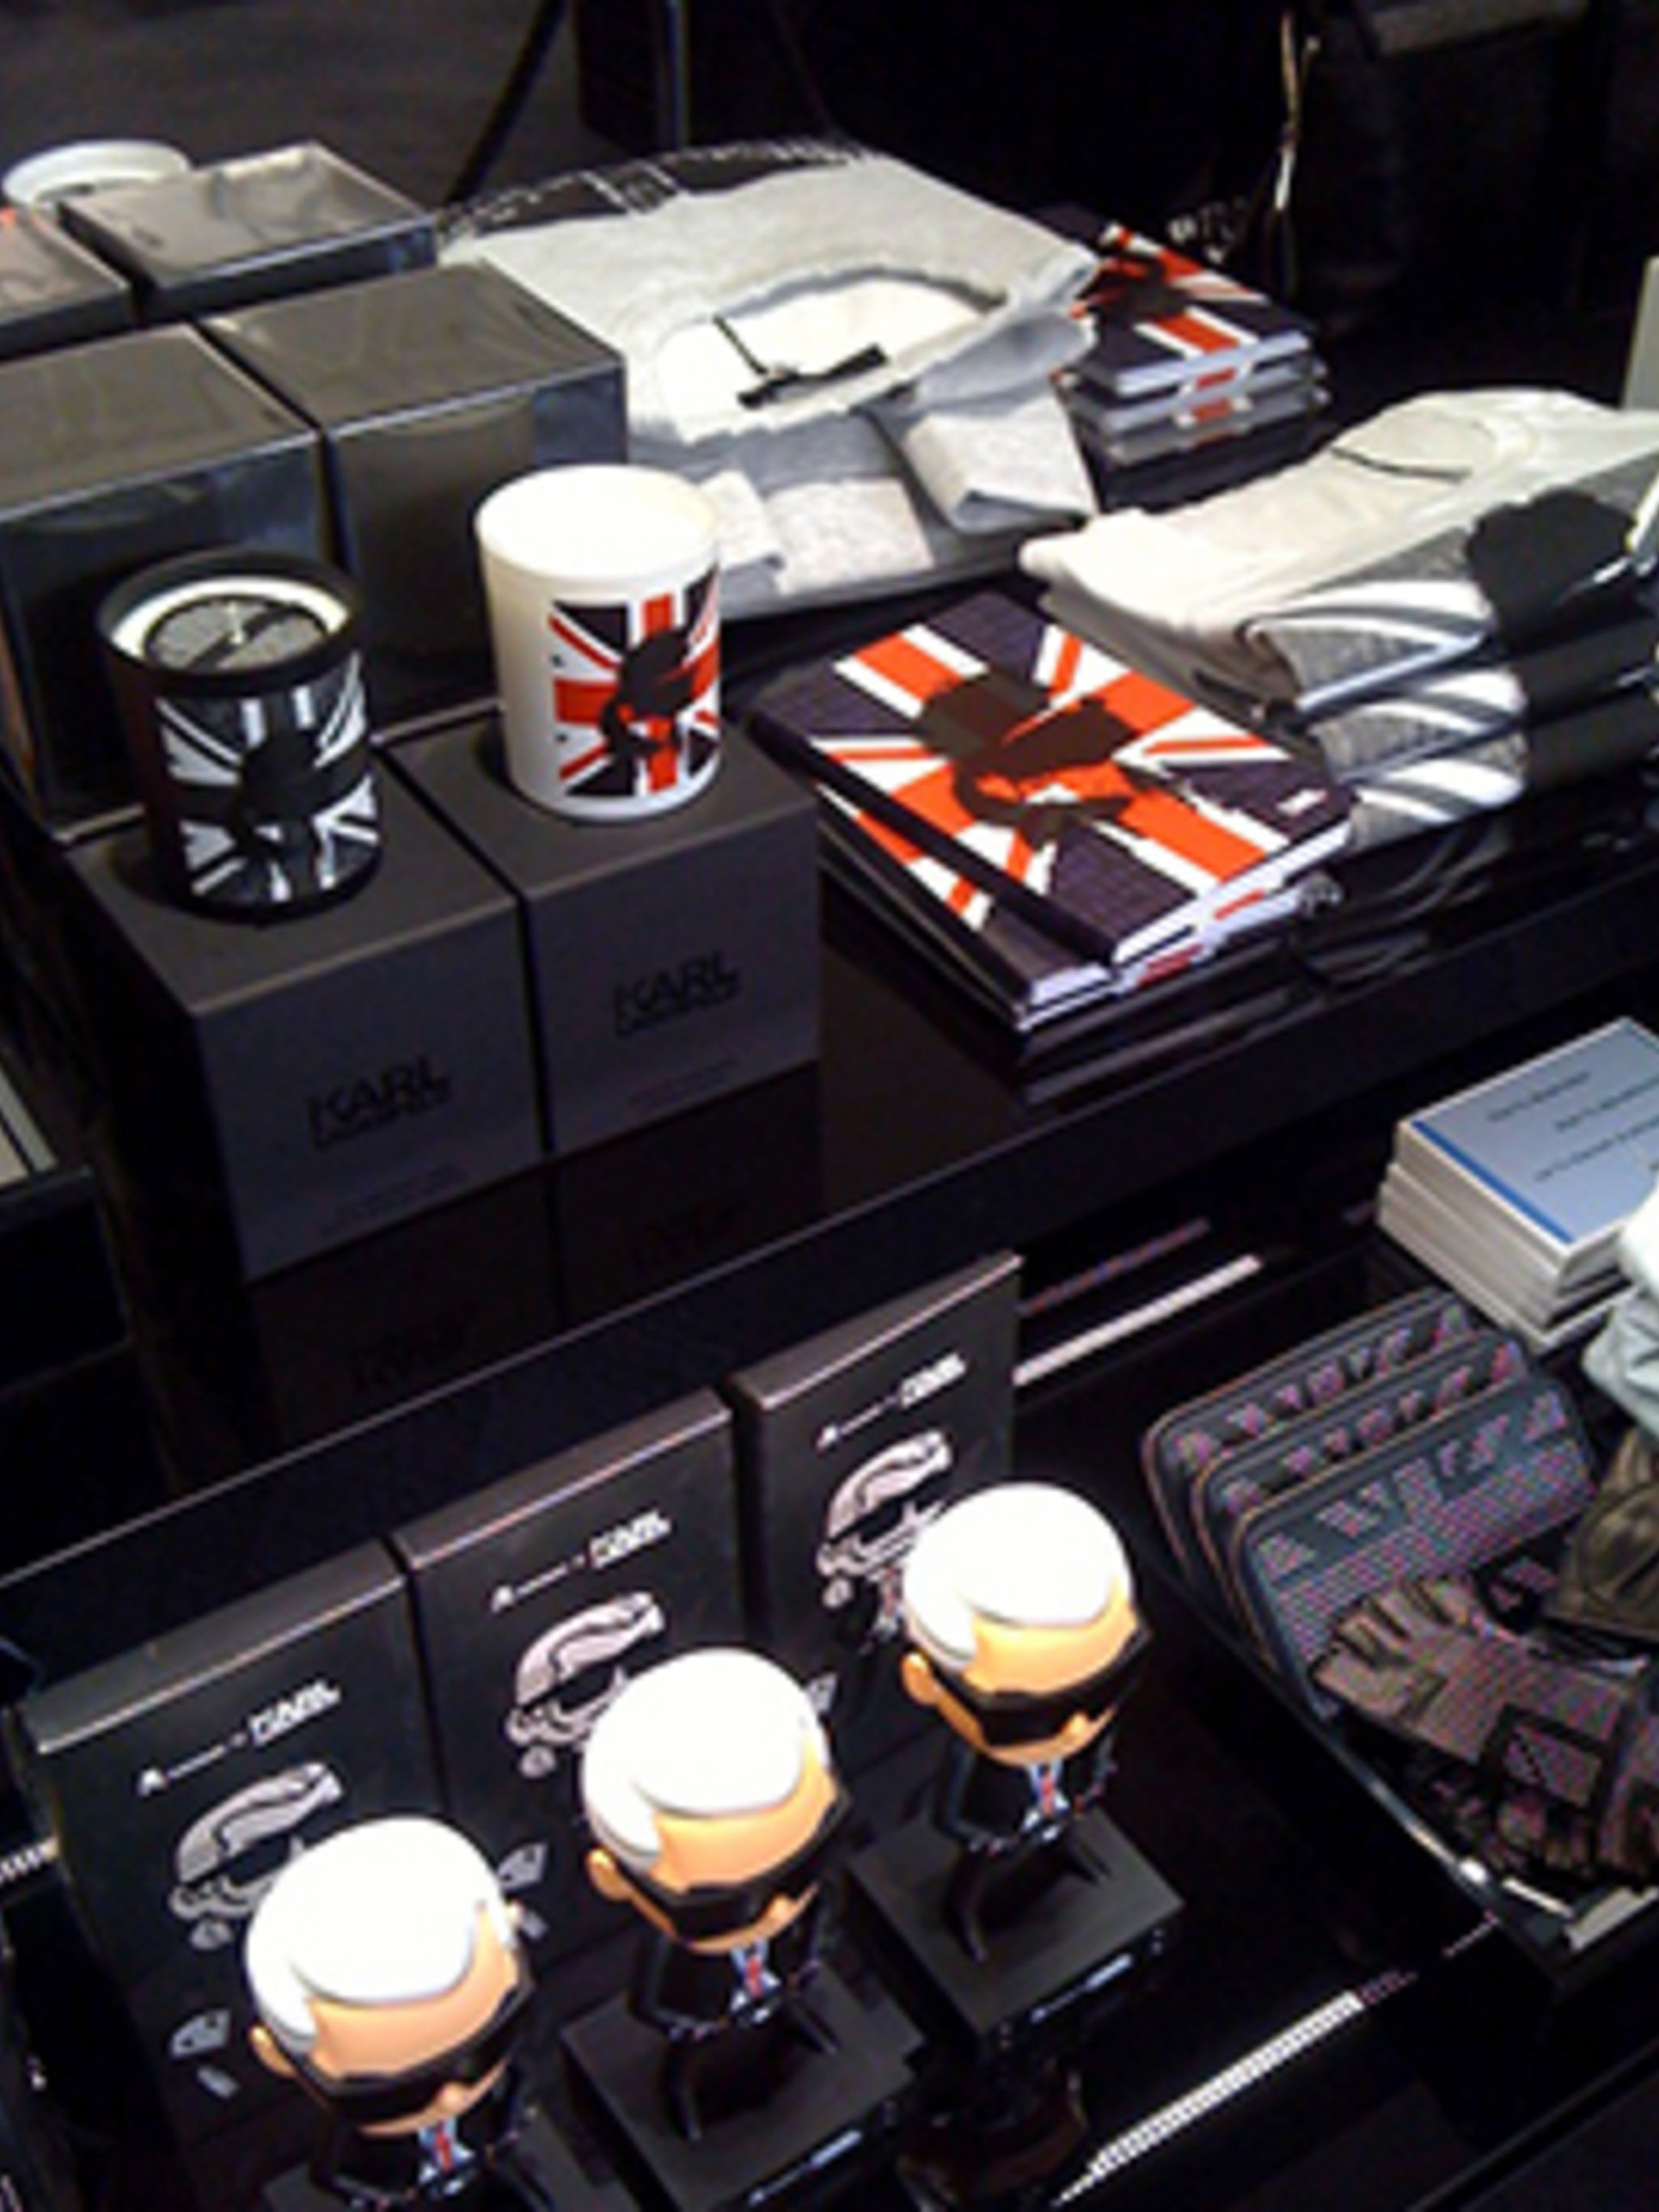 <p>Inside the Karl Lagerfeld store</p>